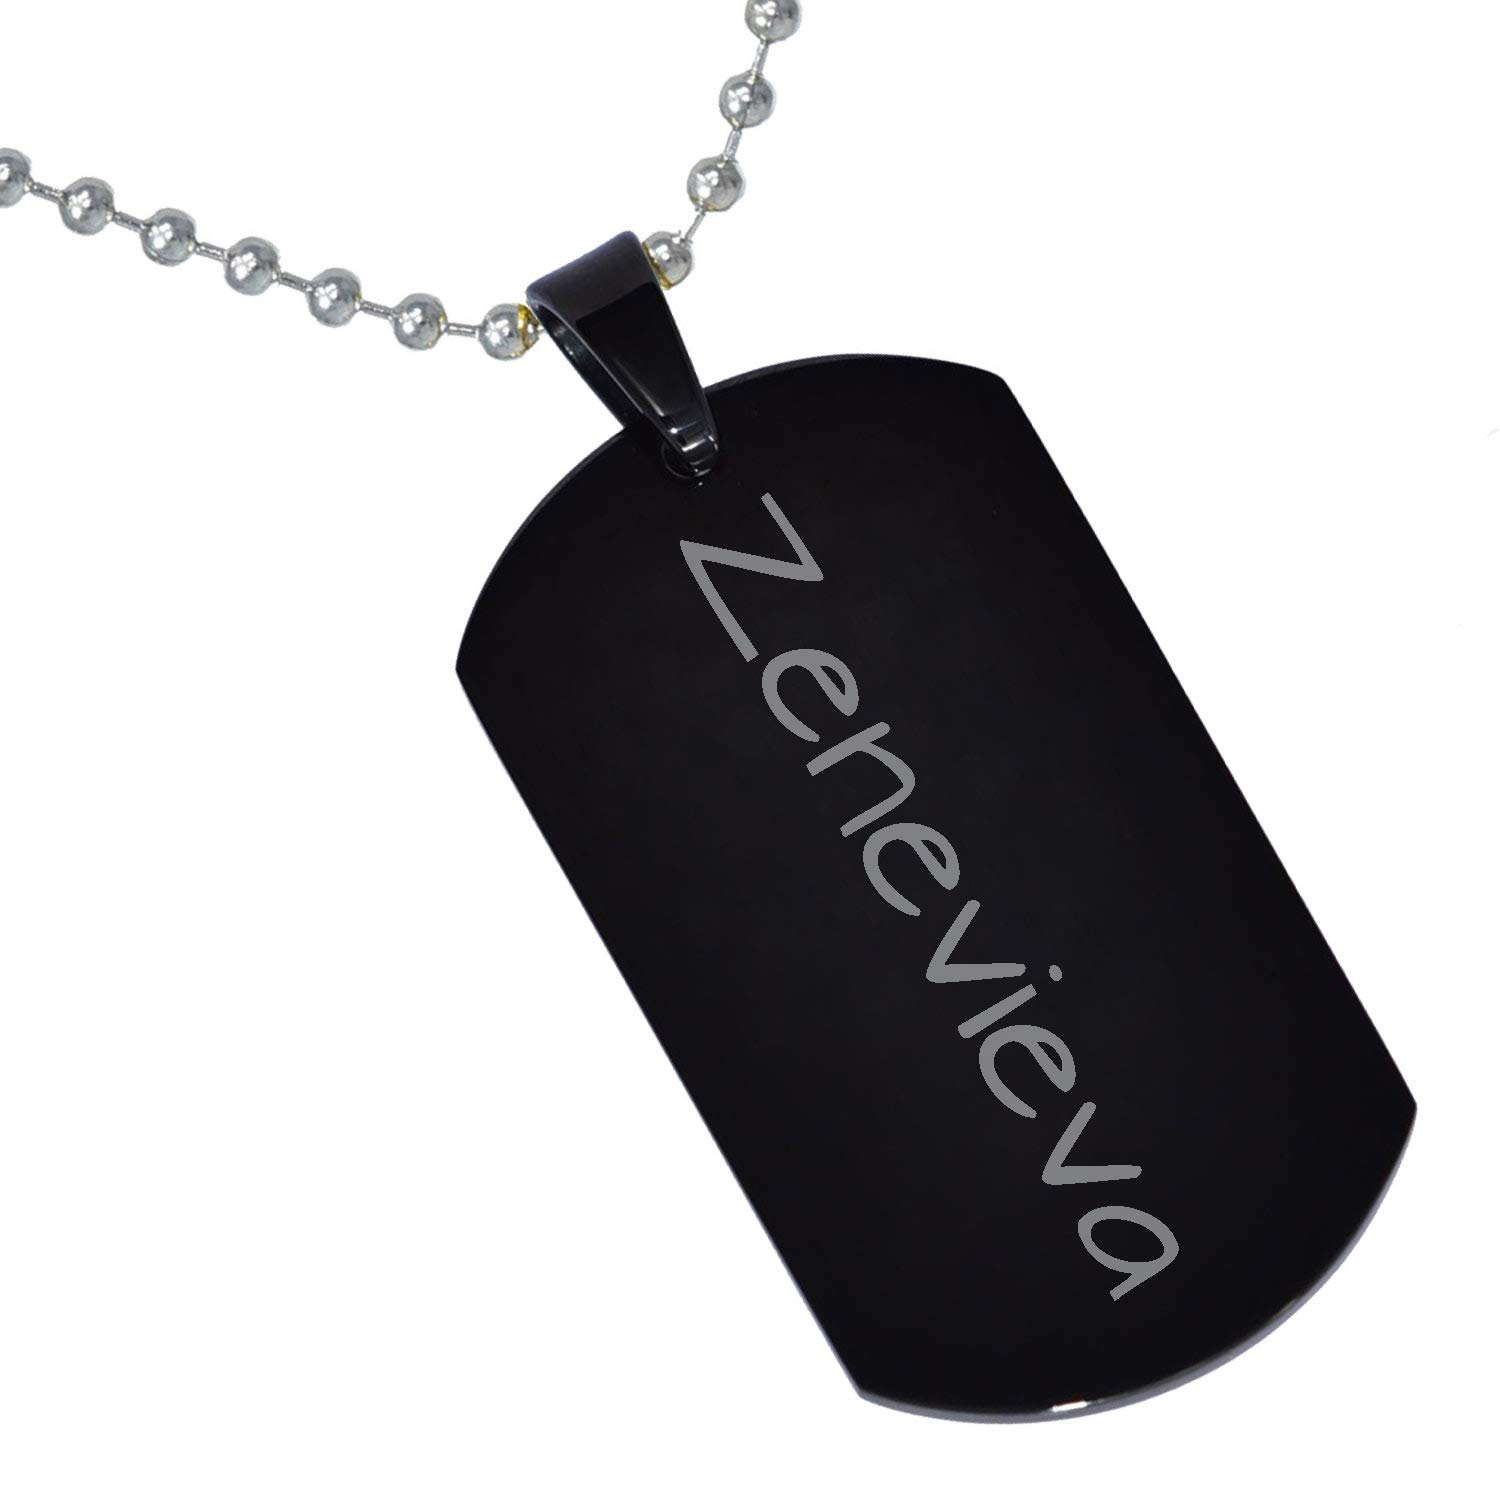 Stainless Steel Silver Gold Black Rose Gold Color Baby Name Zenevieva Engraved Personalized Gifts For Son Daughter Boyfriend Girlfriend Initial Customizable Pendant Necklace Dog Tags 24 Ball Chain